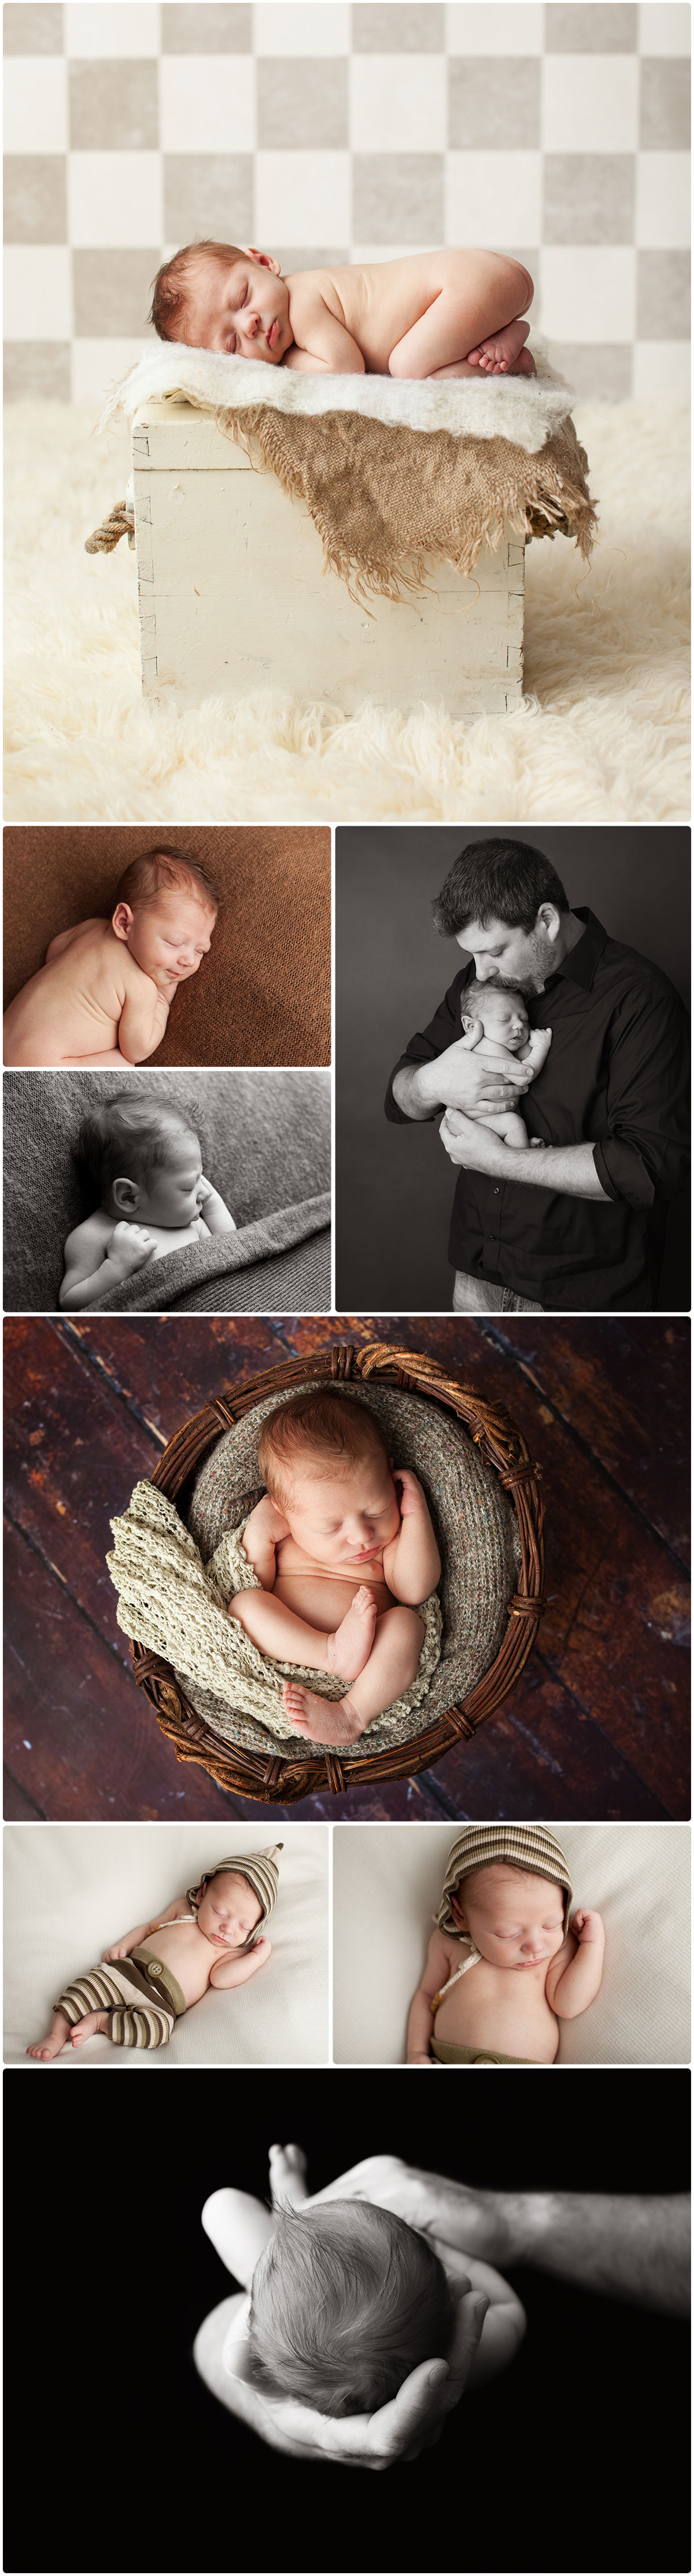 baby-picture-collage